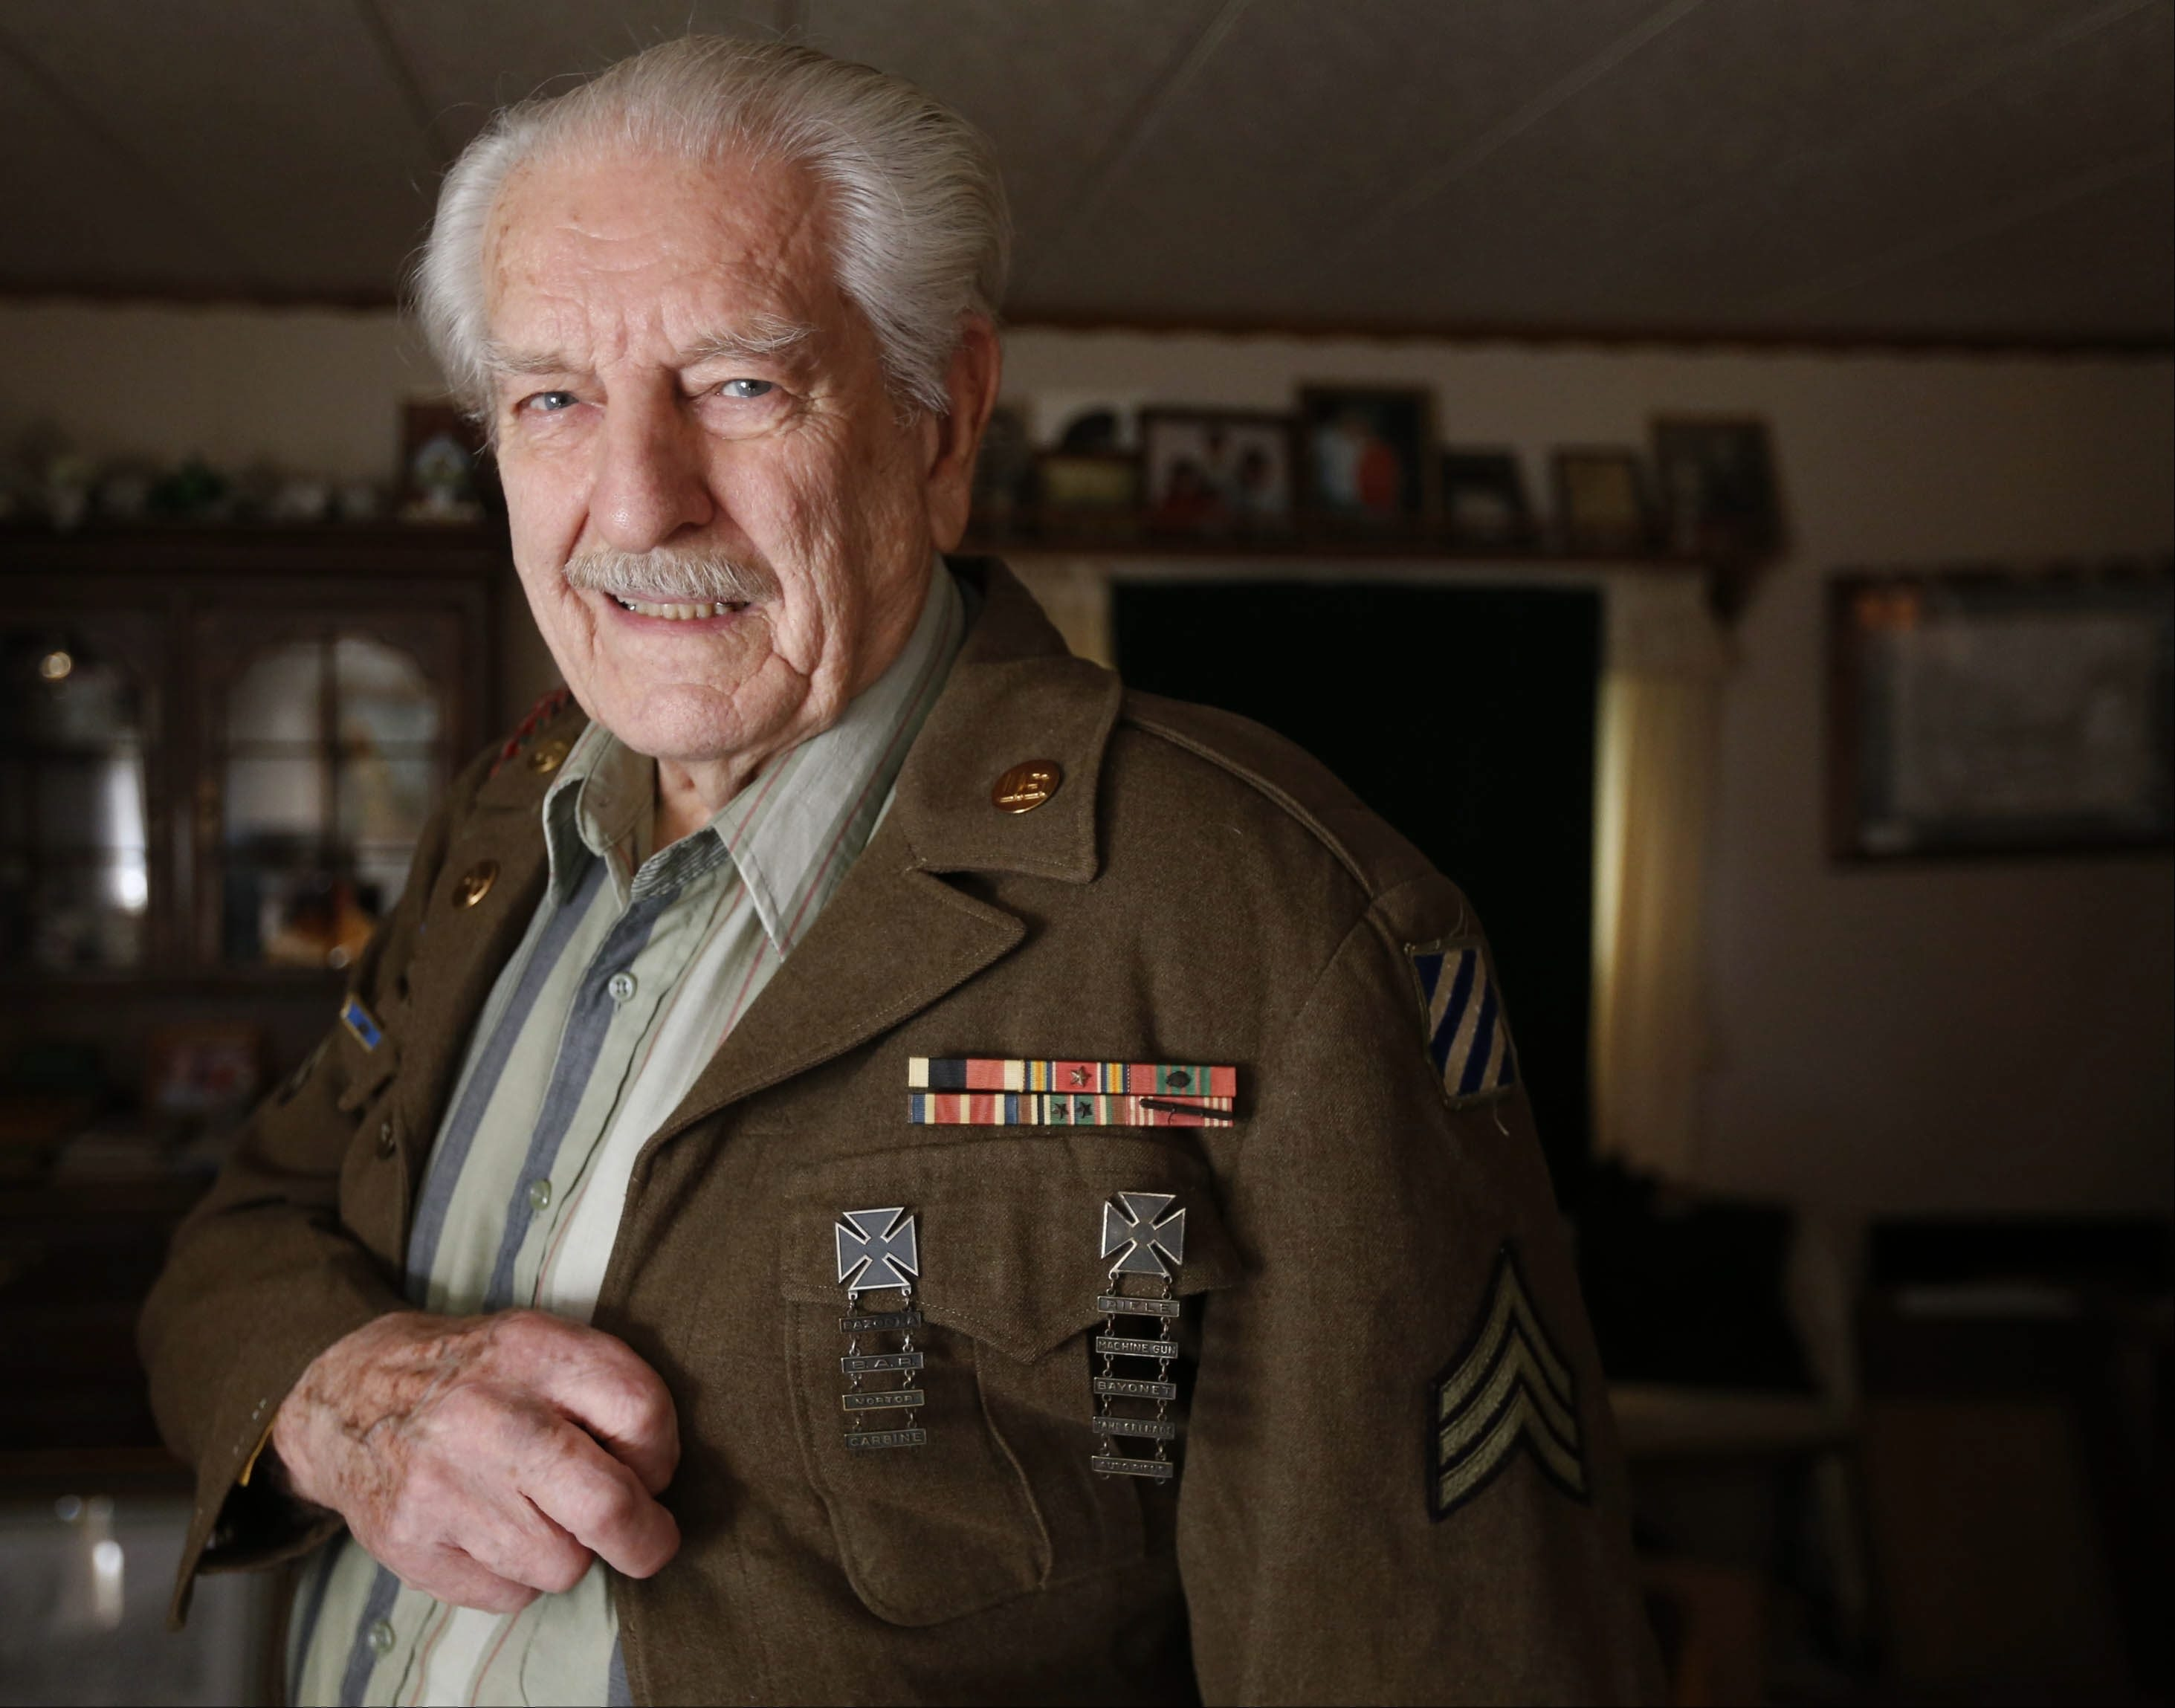 Roy Nieman, at home in Cheektowaga, still fits into his Army uniform from WWII. He was in the Battle of the Bulge, and one particular concussion bomb has had an effect ever since.